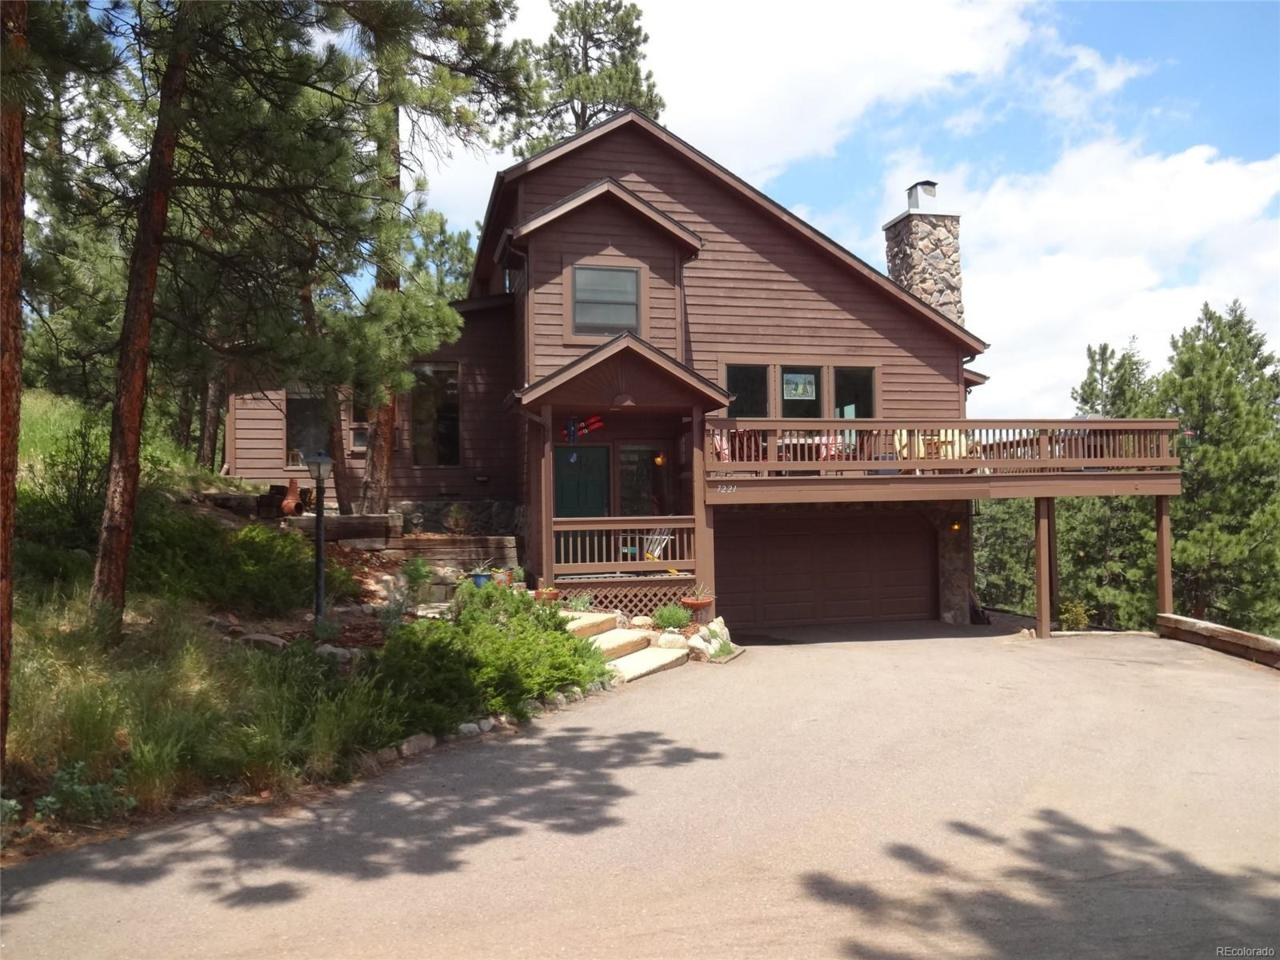 7221 S Brook Forest Road, Evergreen, CO 80439 (MLS #3516661) :: 8z Real Estate